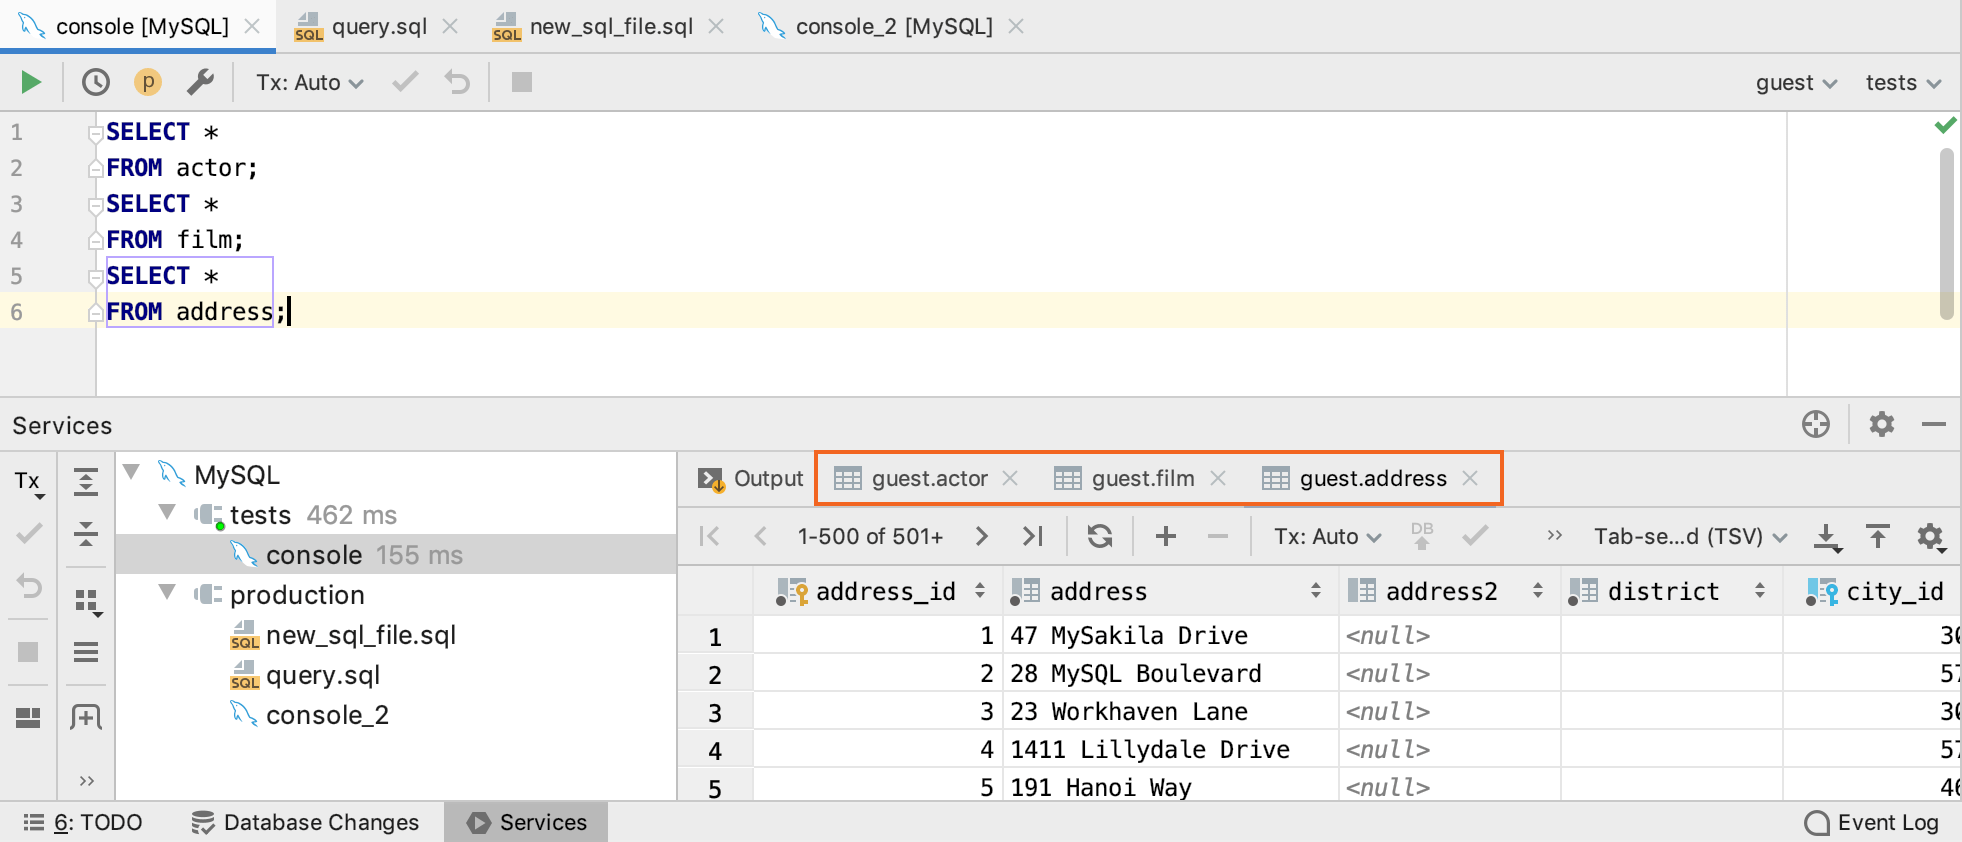 Open a new tab for each query